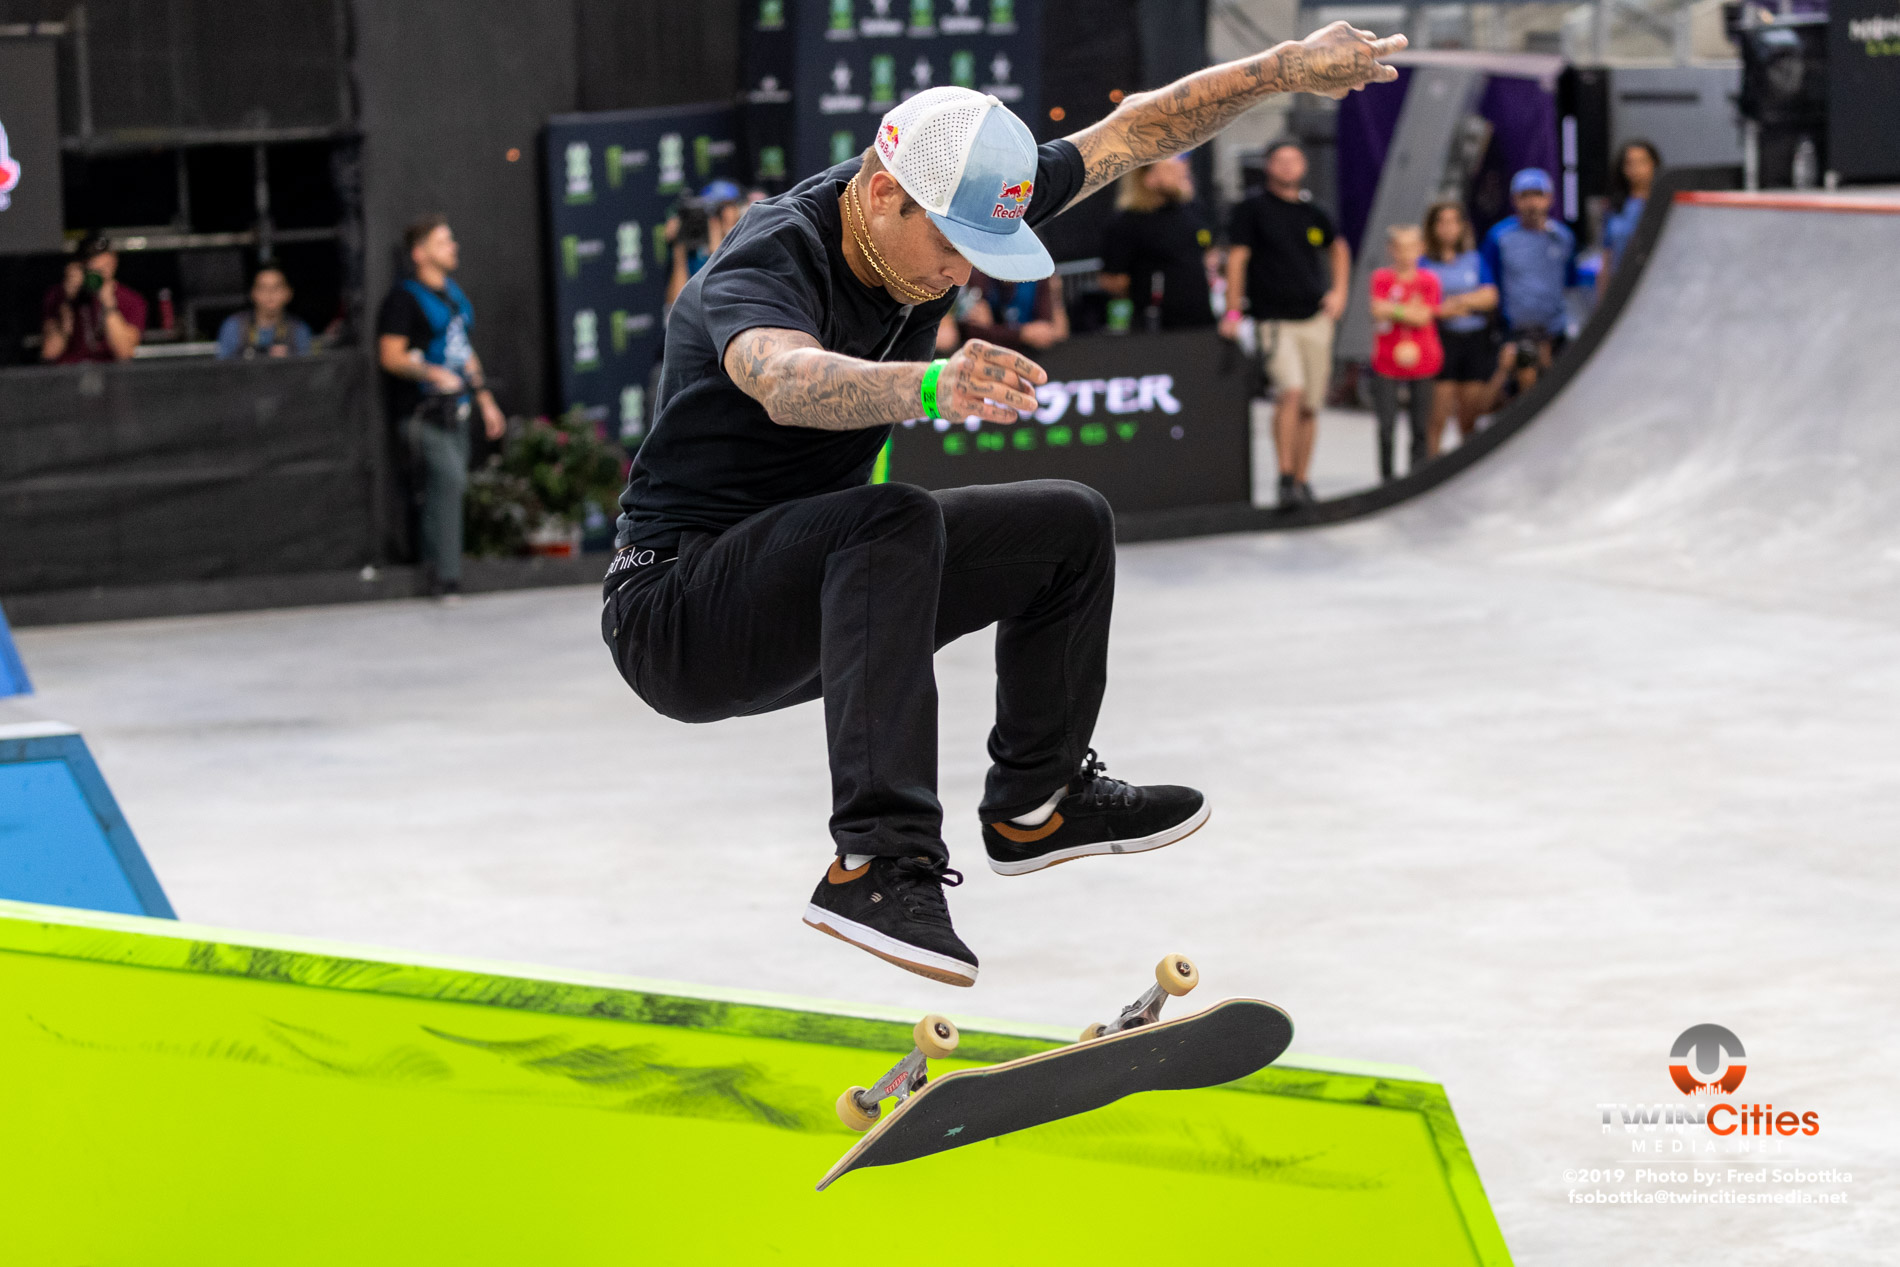 Monster-Energy-Mens-Skateboard-Street-Elimination-12